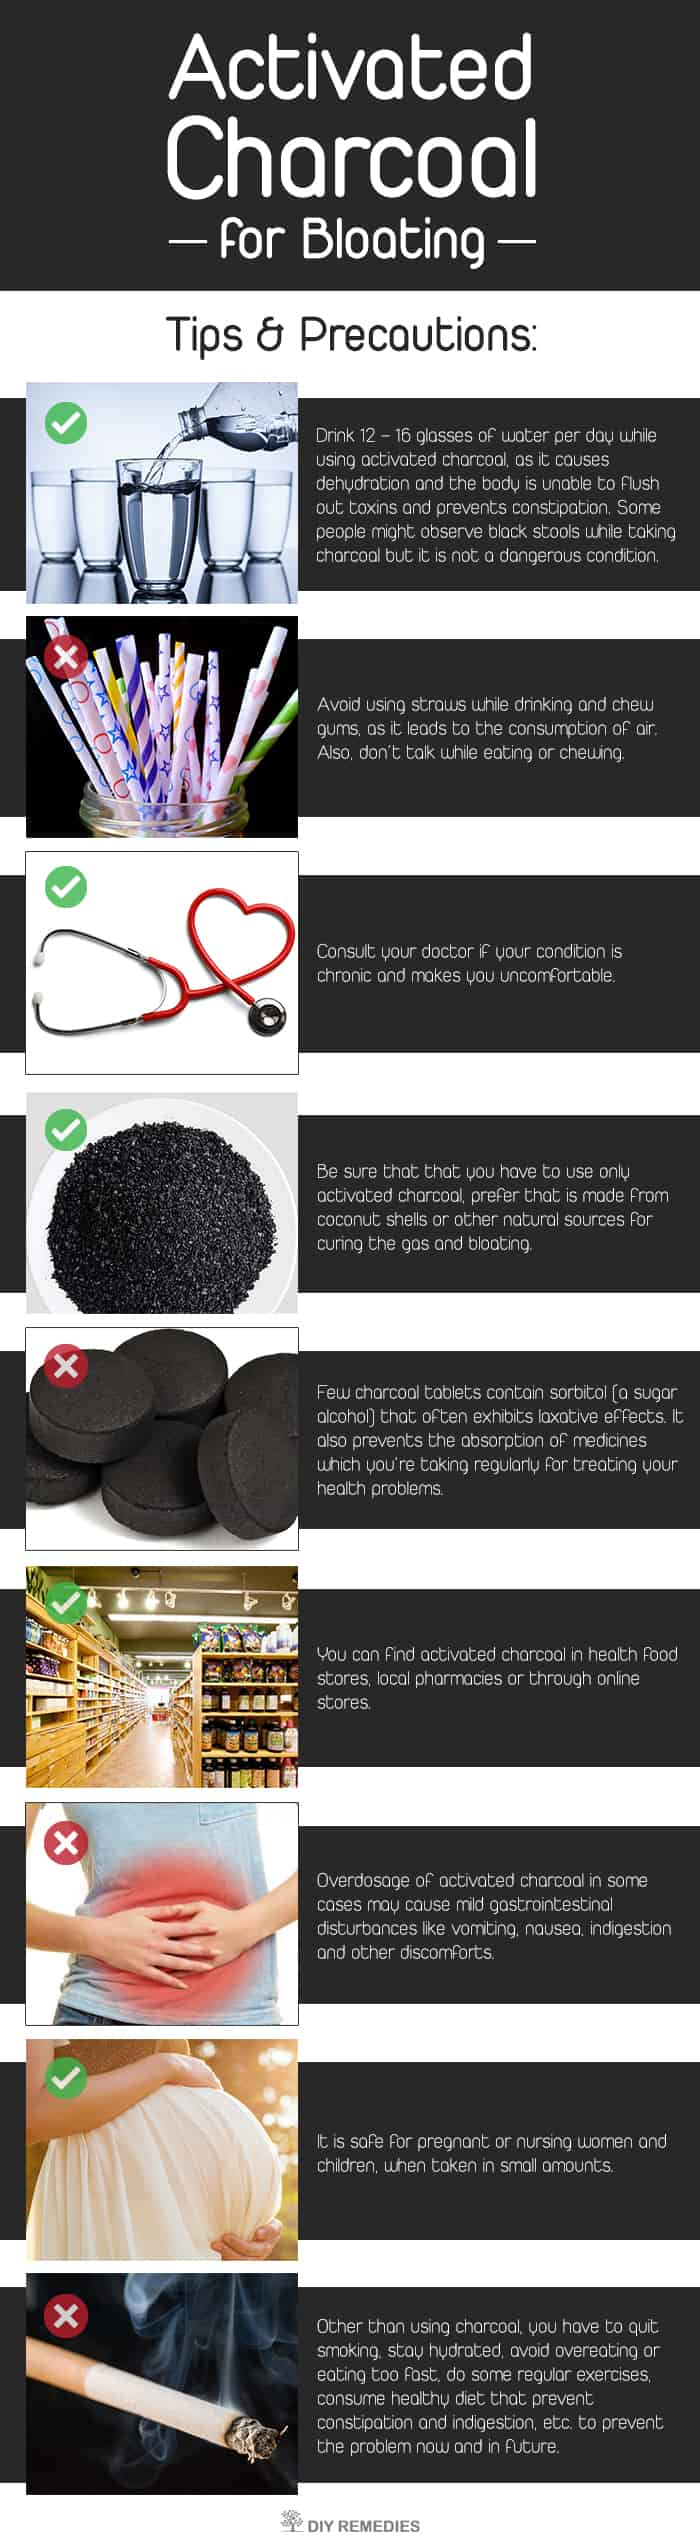 Activated-Charcoal-for-Bloating